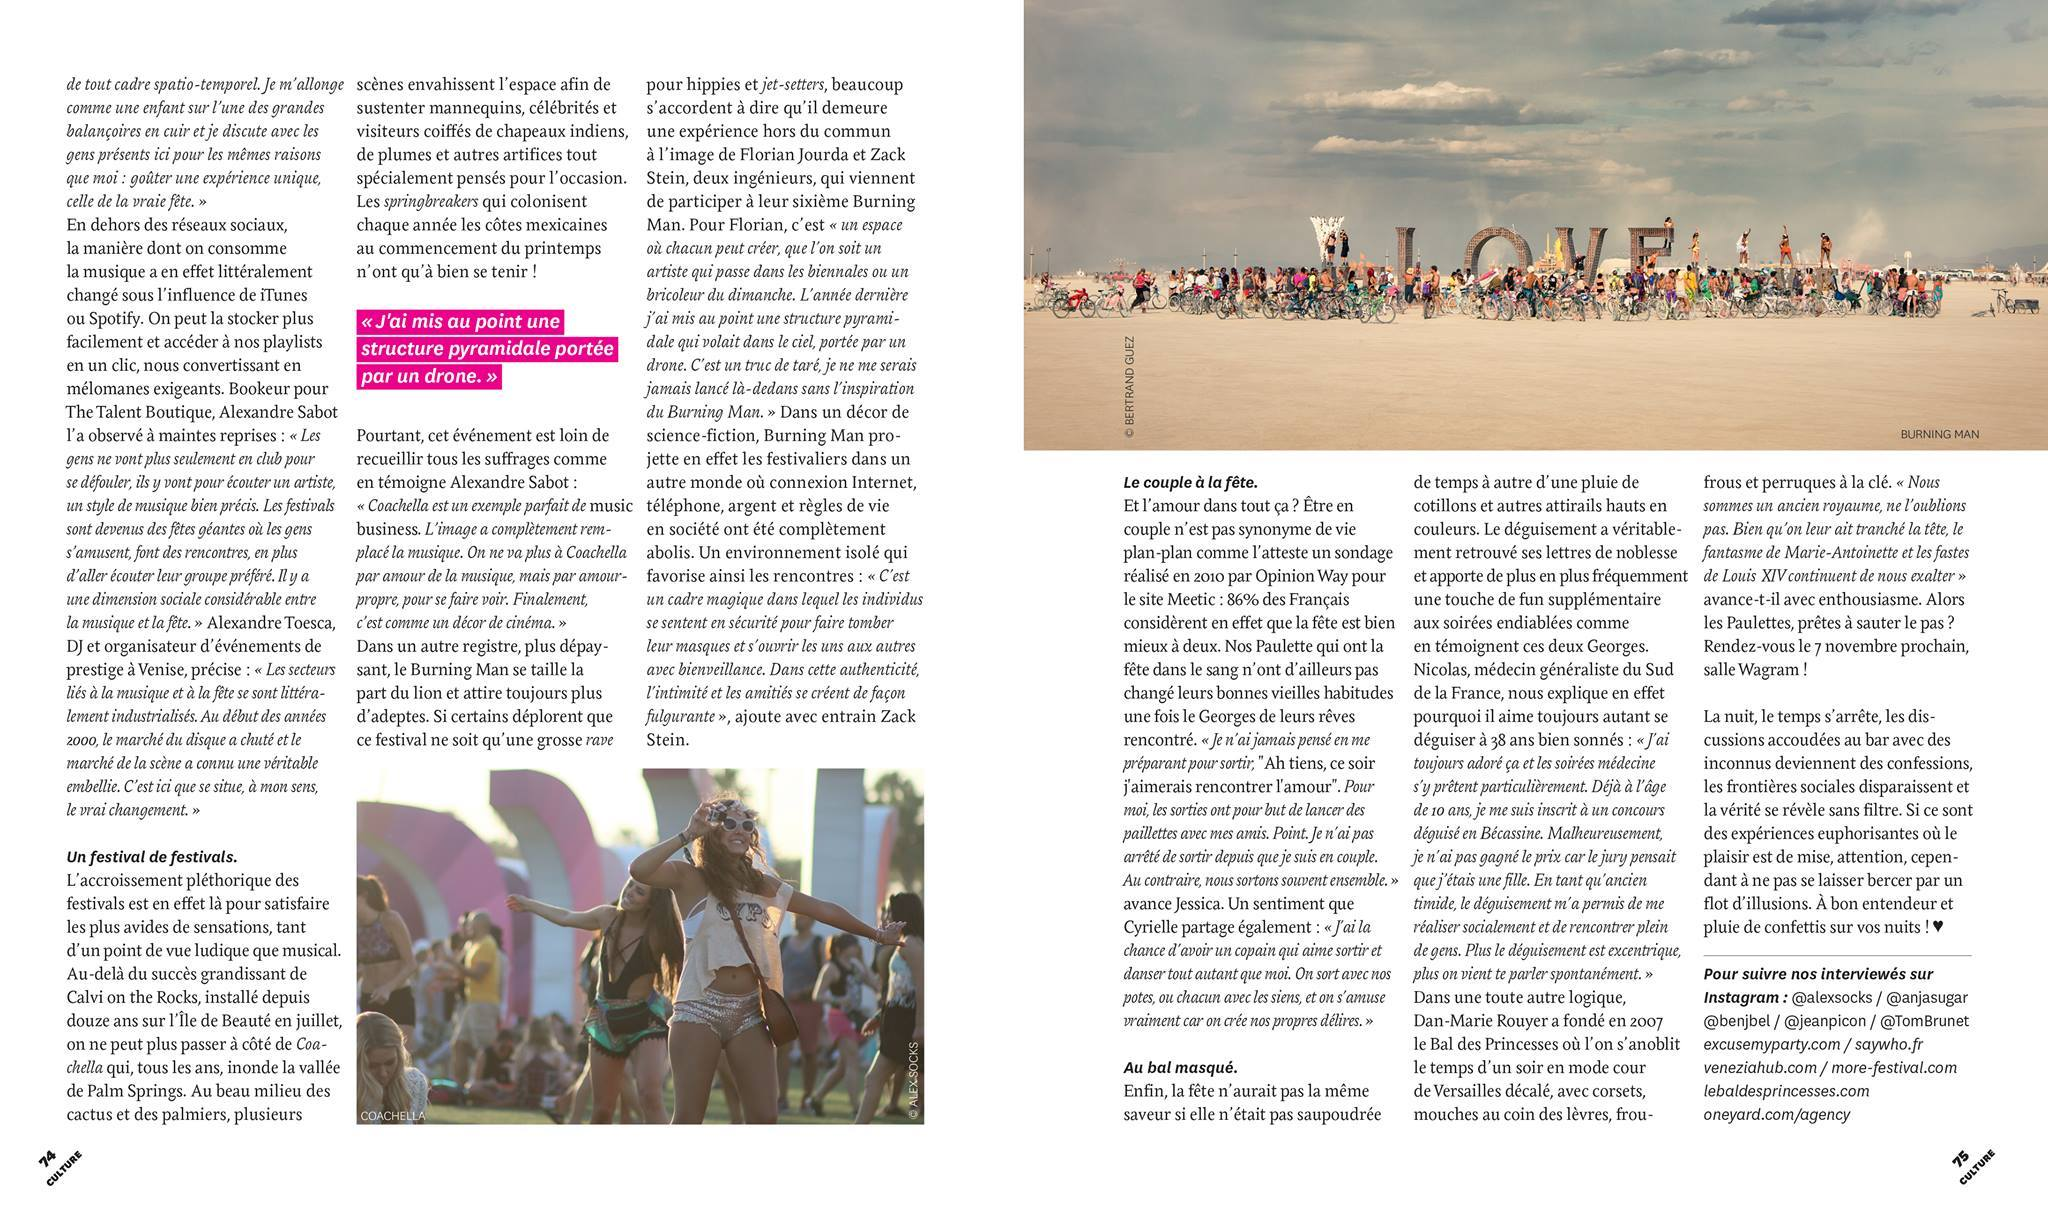 Paulette-Magazine-Burning-Man-Article.jpg